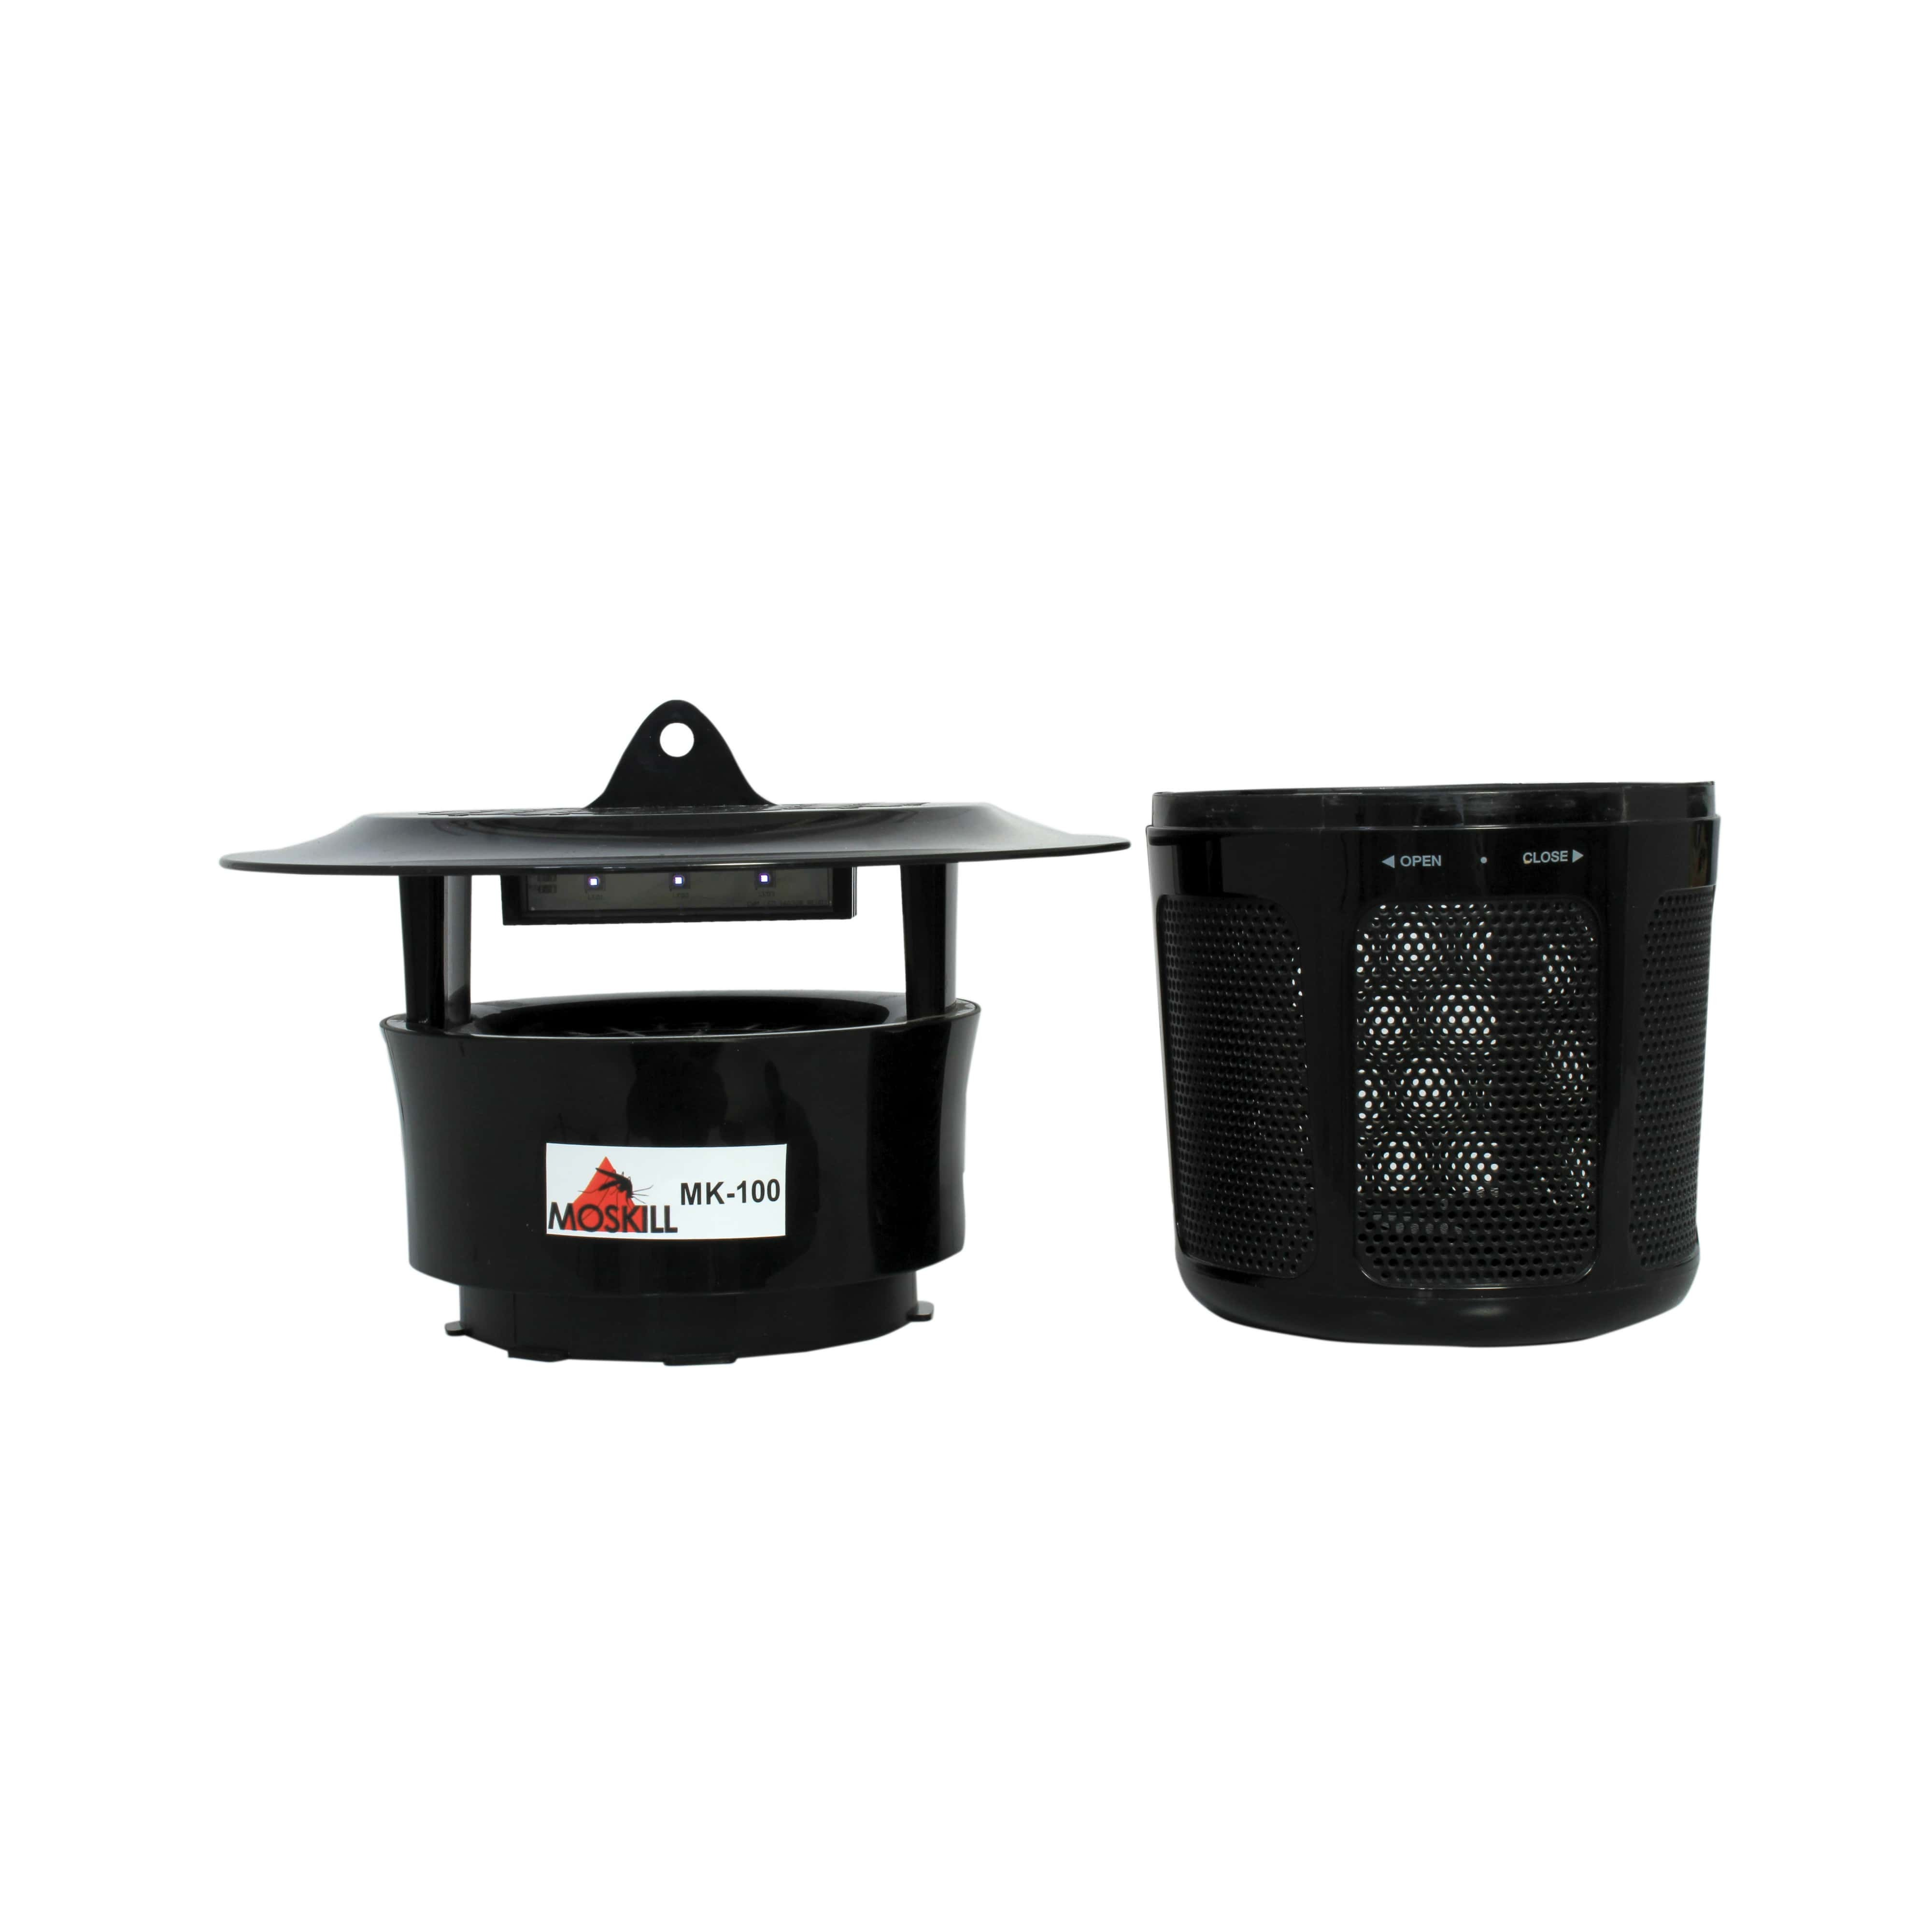 Moskill MK-100 Mosquito and Insect Trap